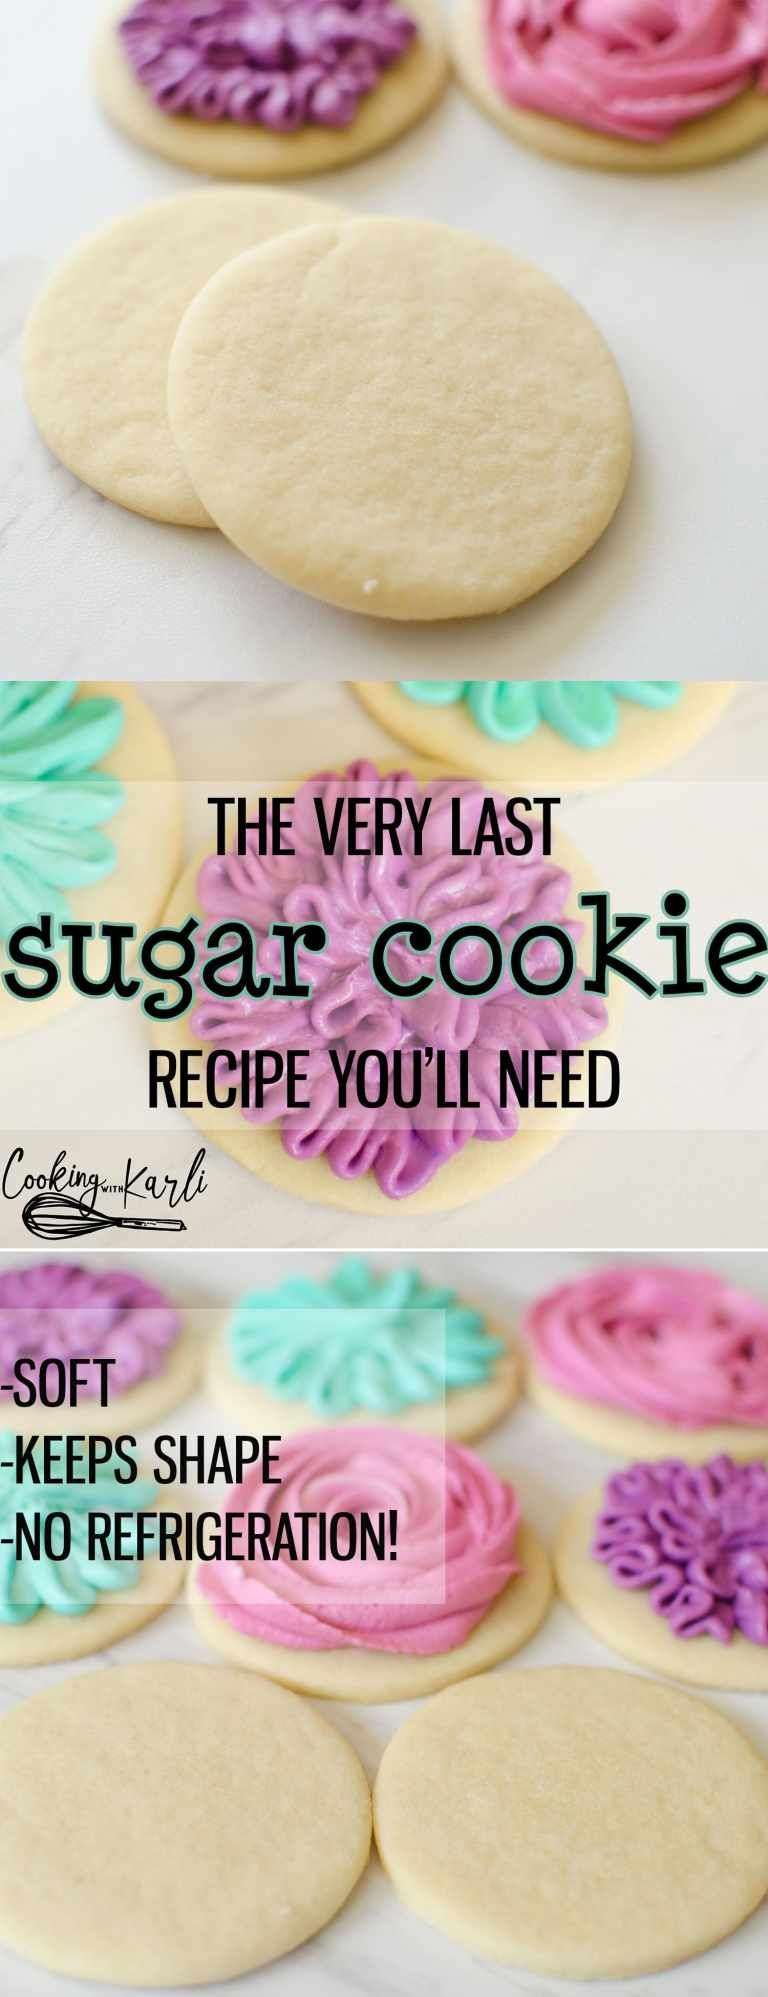 Perfect Sugar Cookie Recipe is really just that-PERFECT. These sugar cookies come together quickly with only 6 ingredients; butter, sugar, egg, vanilla, flour and baking soda. The cookies keep shape while baking, are soft and chewy, plus there is NO refrigeration! This Sugar Cookie recipe is PERFECTION! -Cooking with Karli- #sugarcookie #recipe #easy #fast #cutout #quickcookies